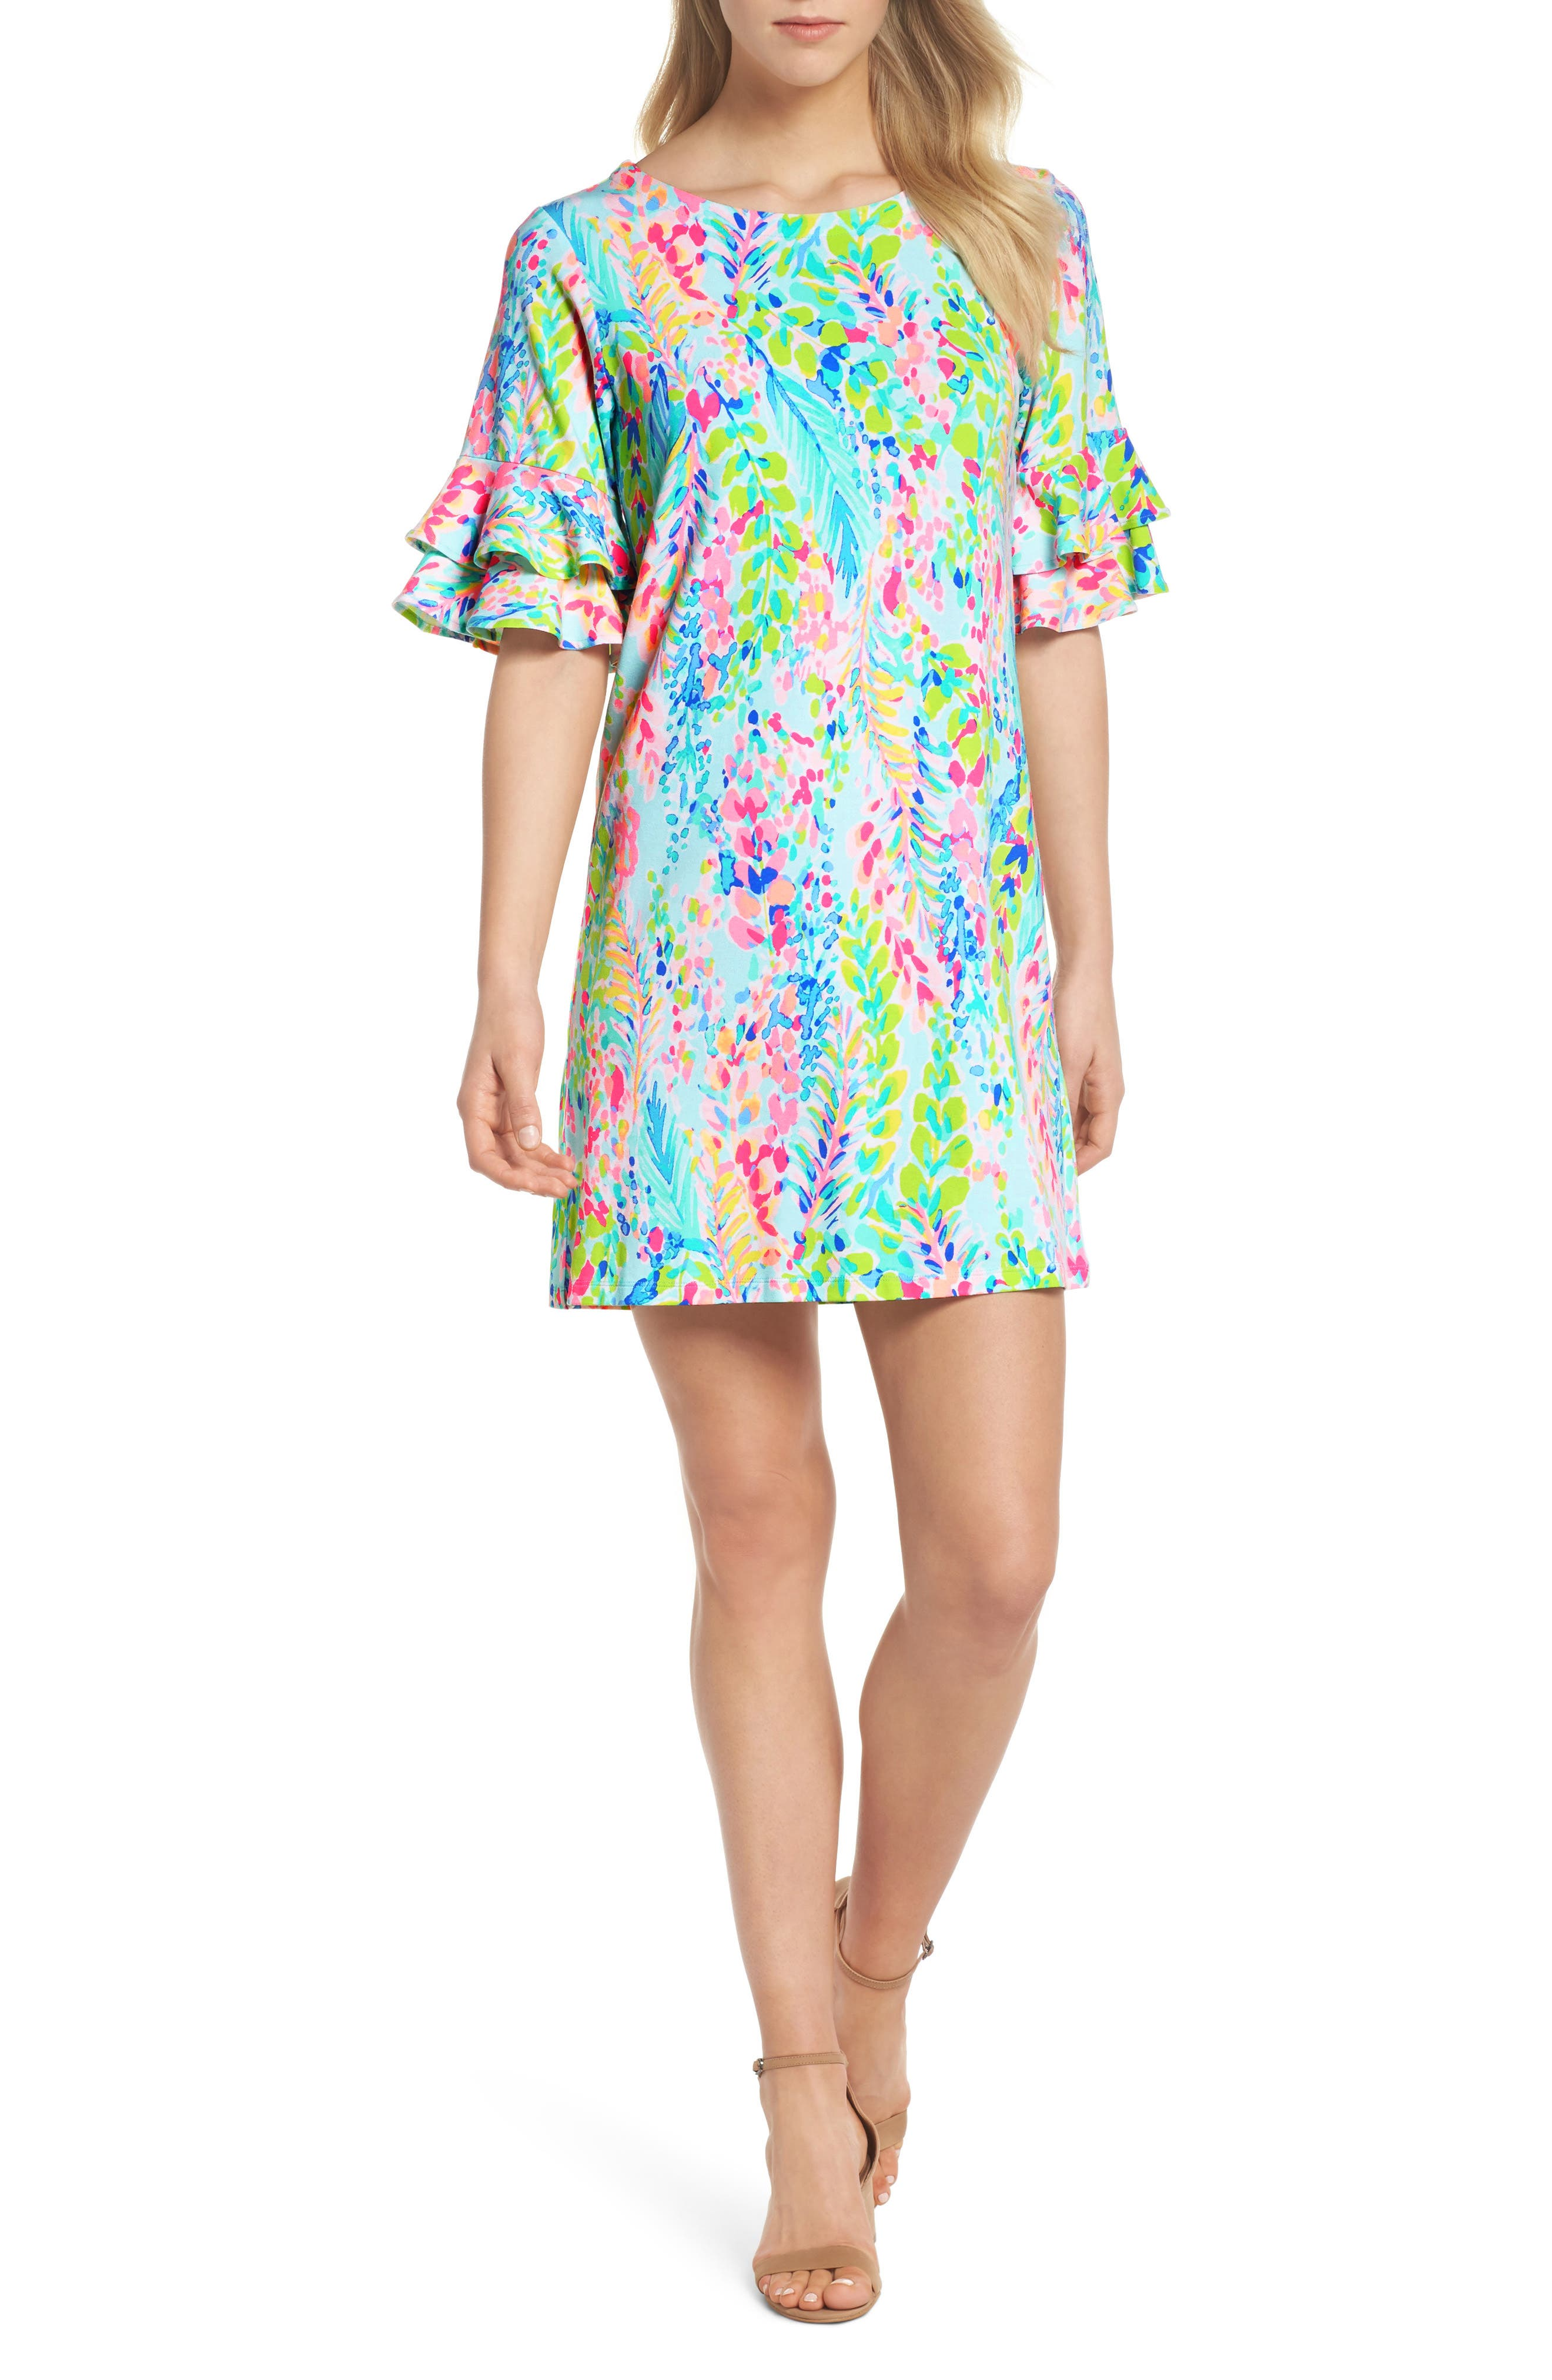 Lula Ruffle Sleeve Dress,                             Main thumbnail 1, color,                             Multi Catch The Wave